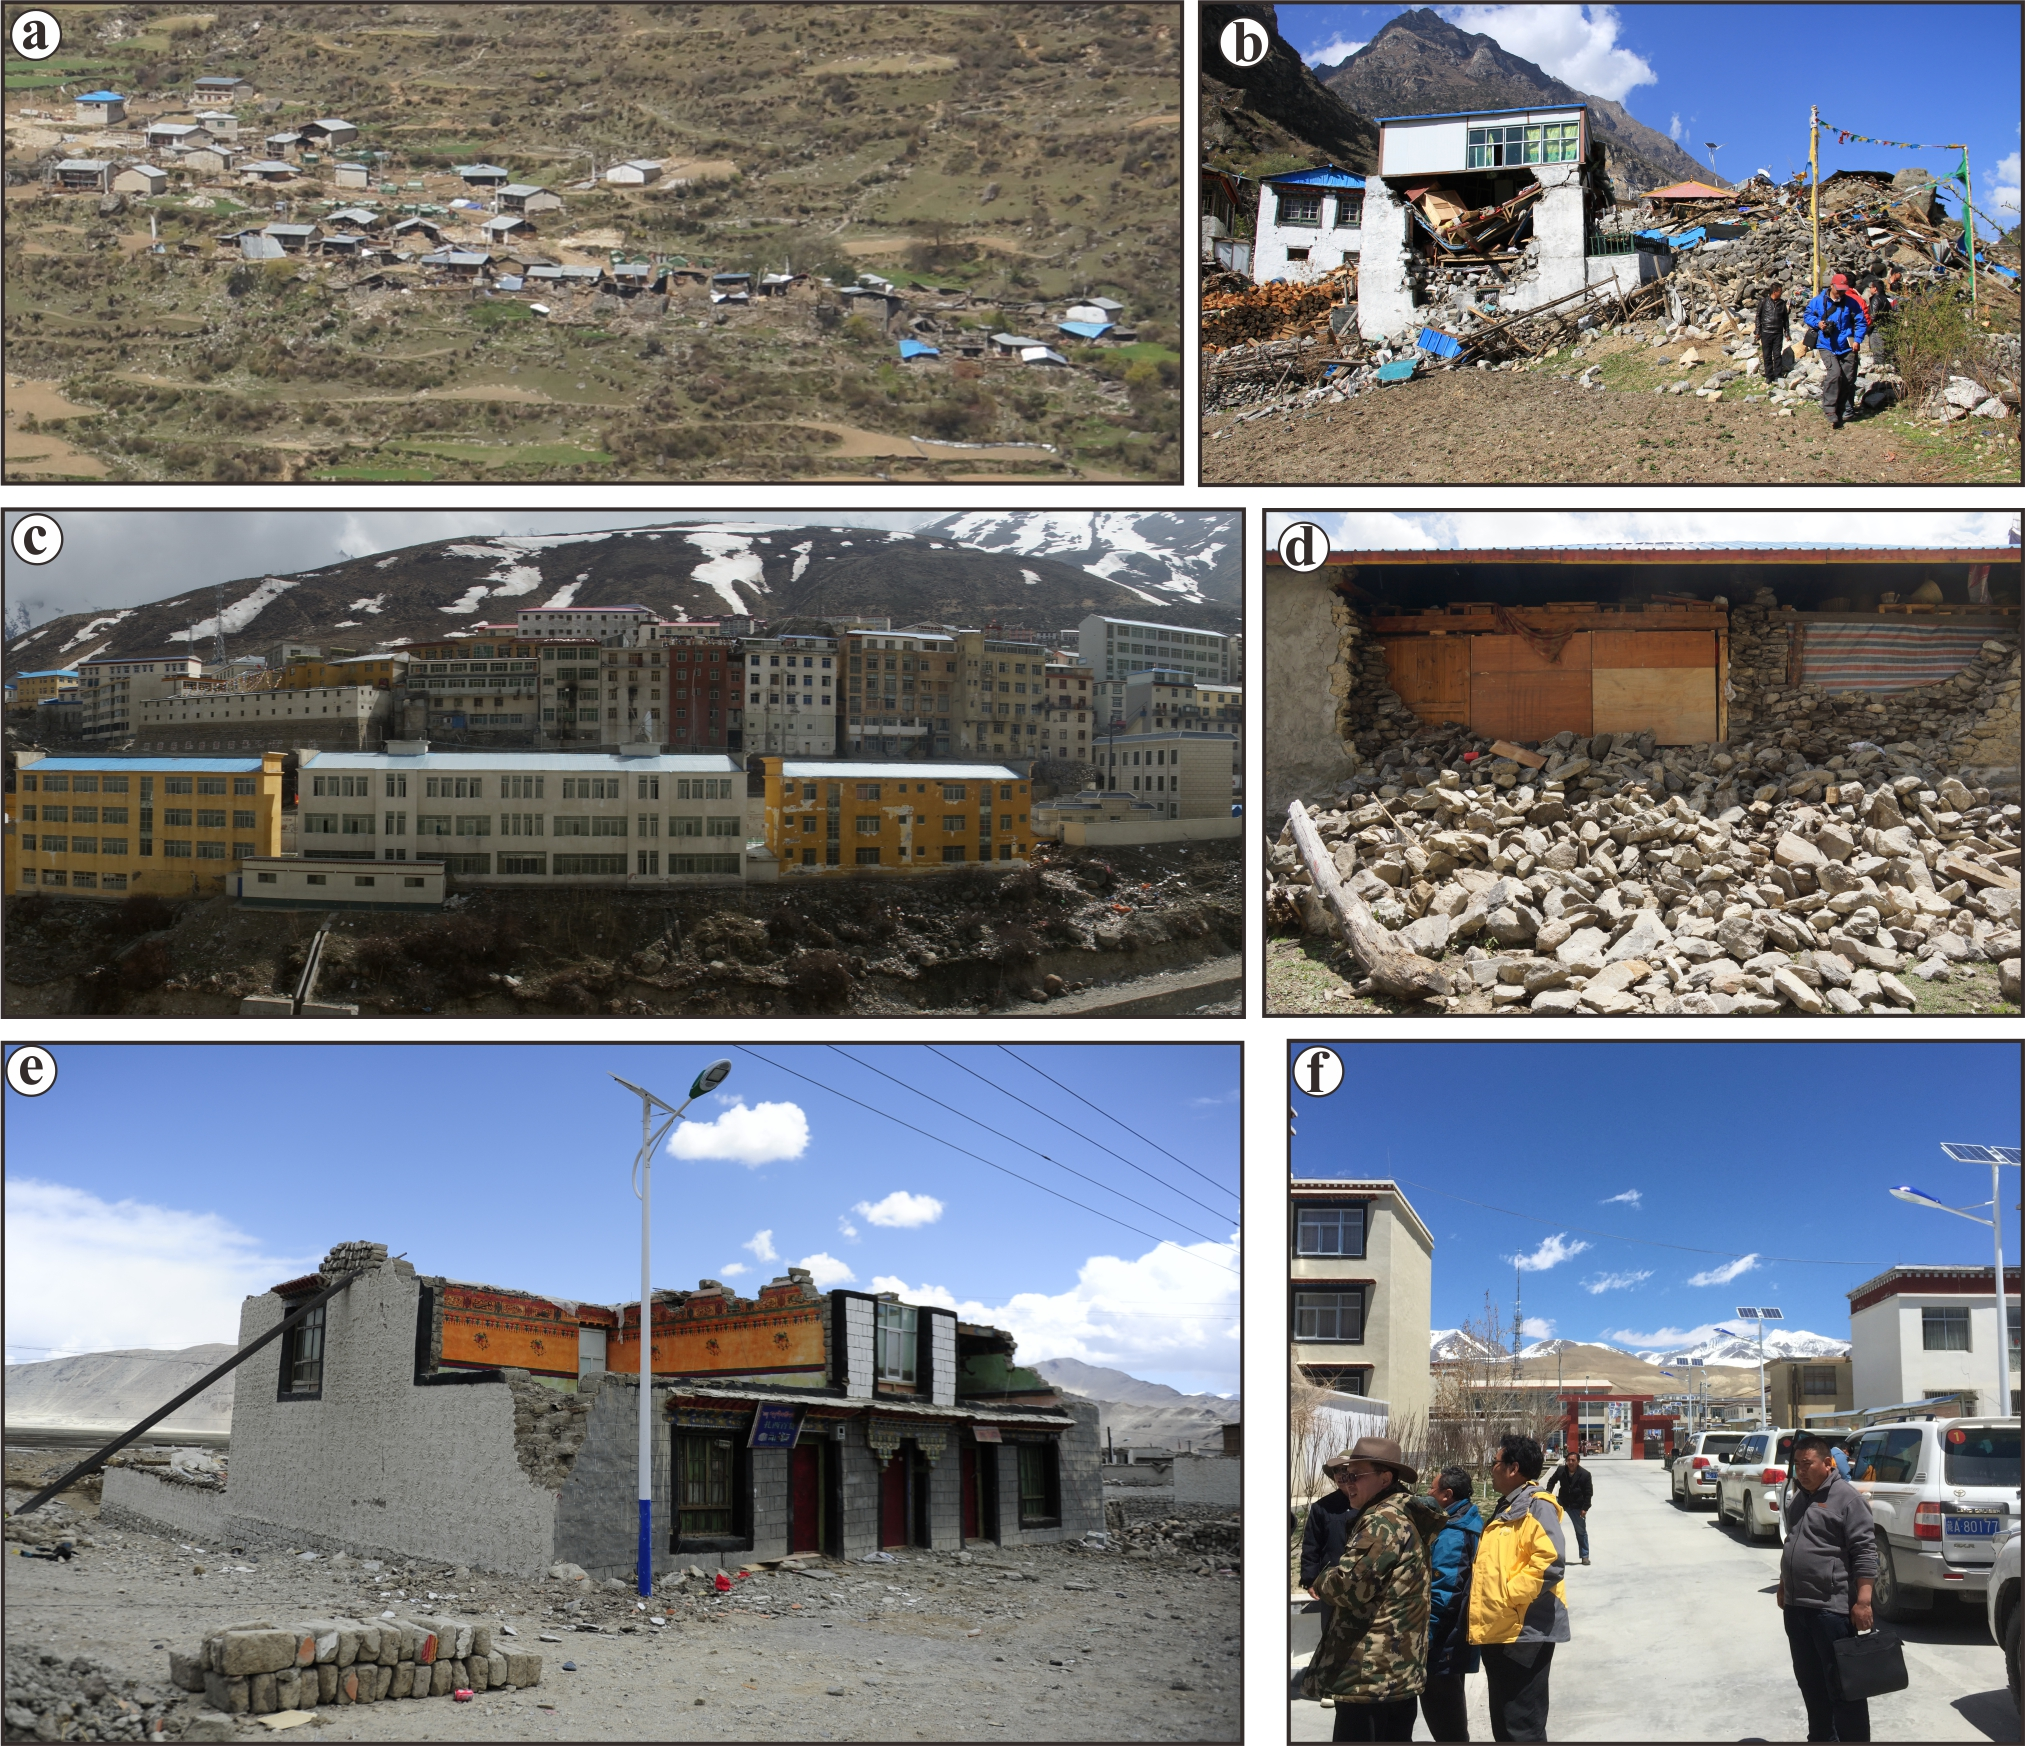 NHESS - Damage induced by the 25 April 2015 Nepal earthquake in the